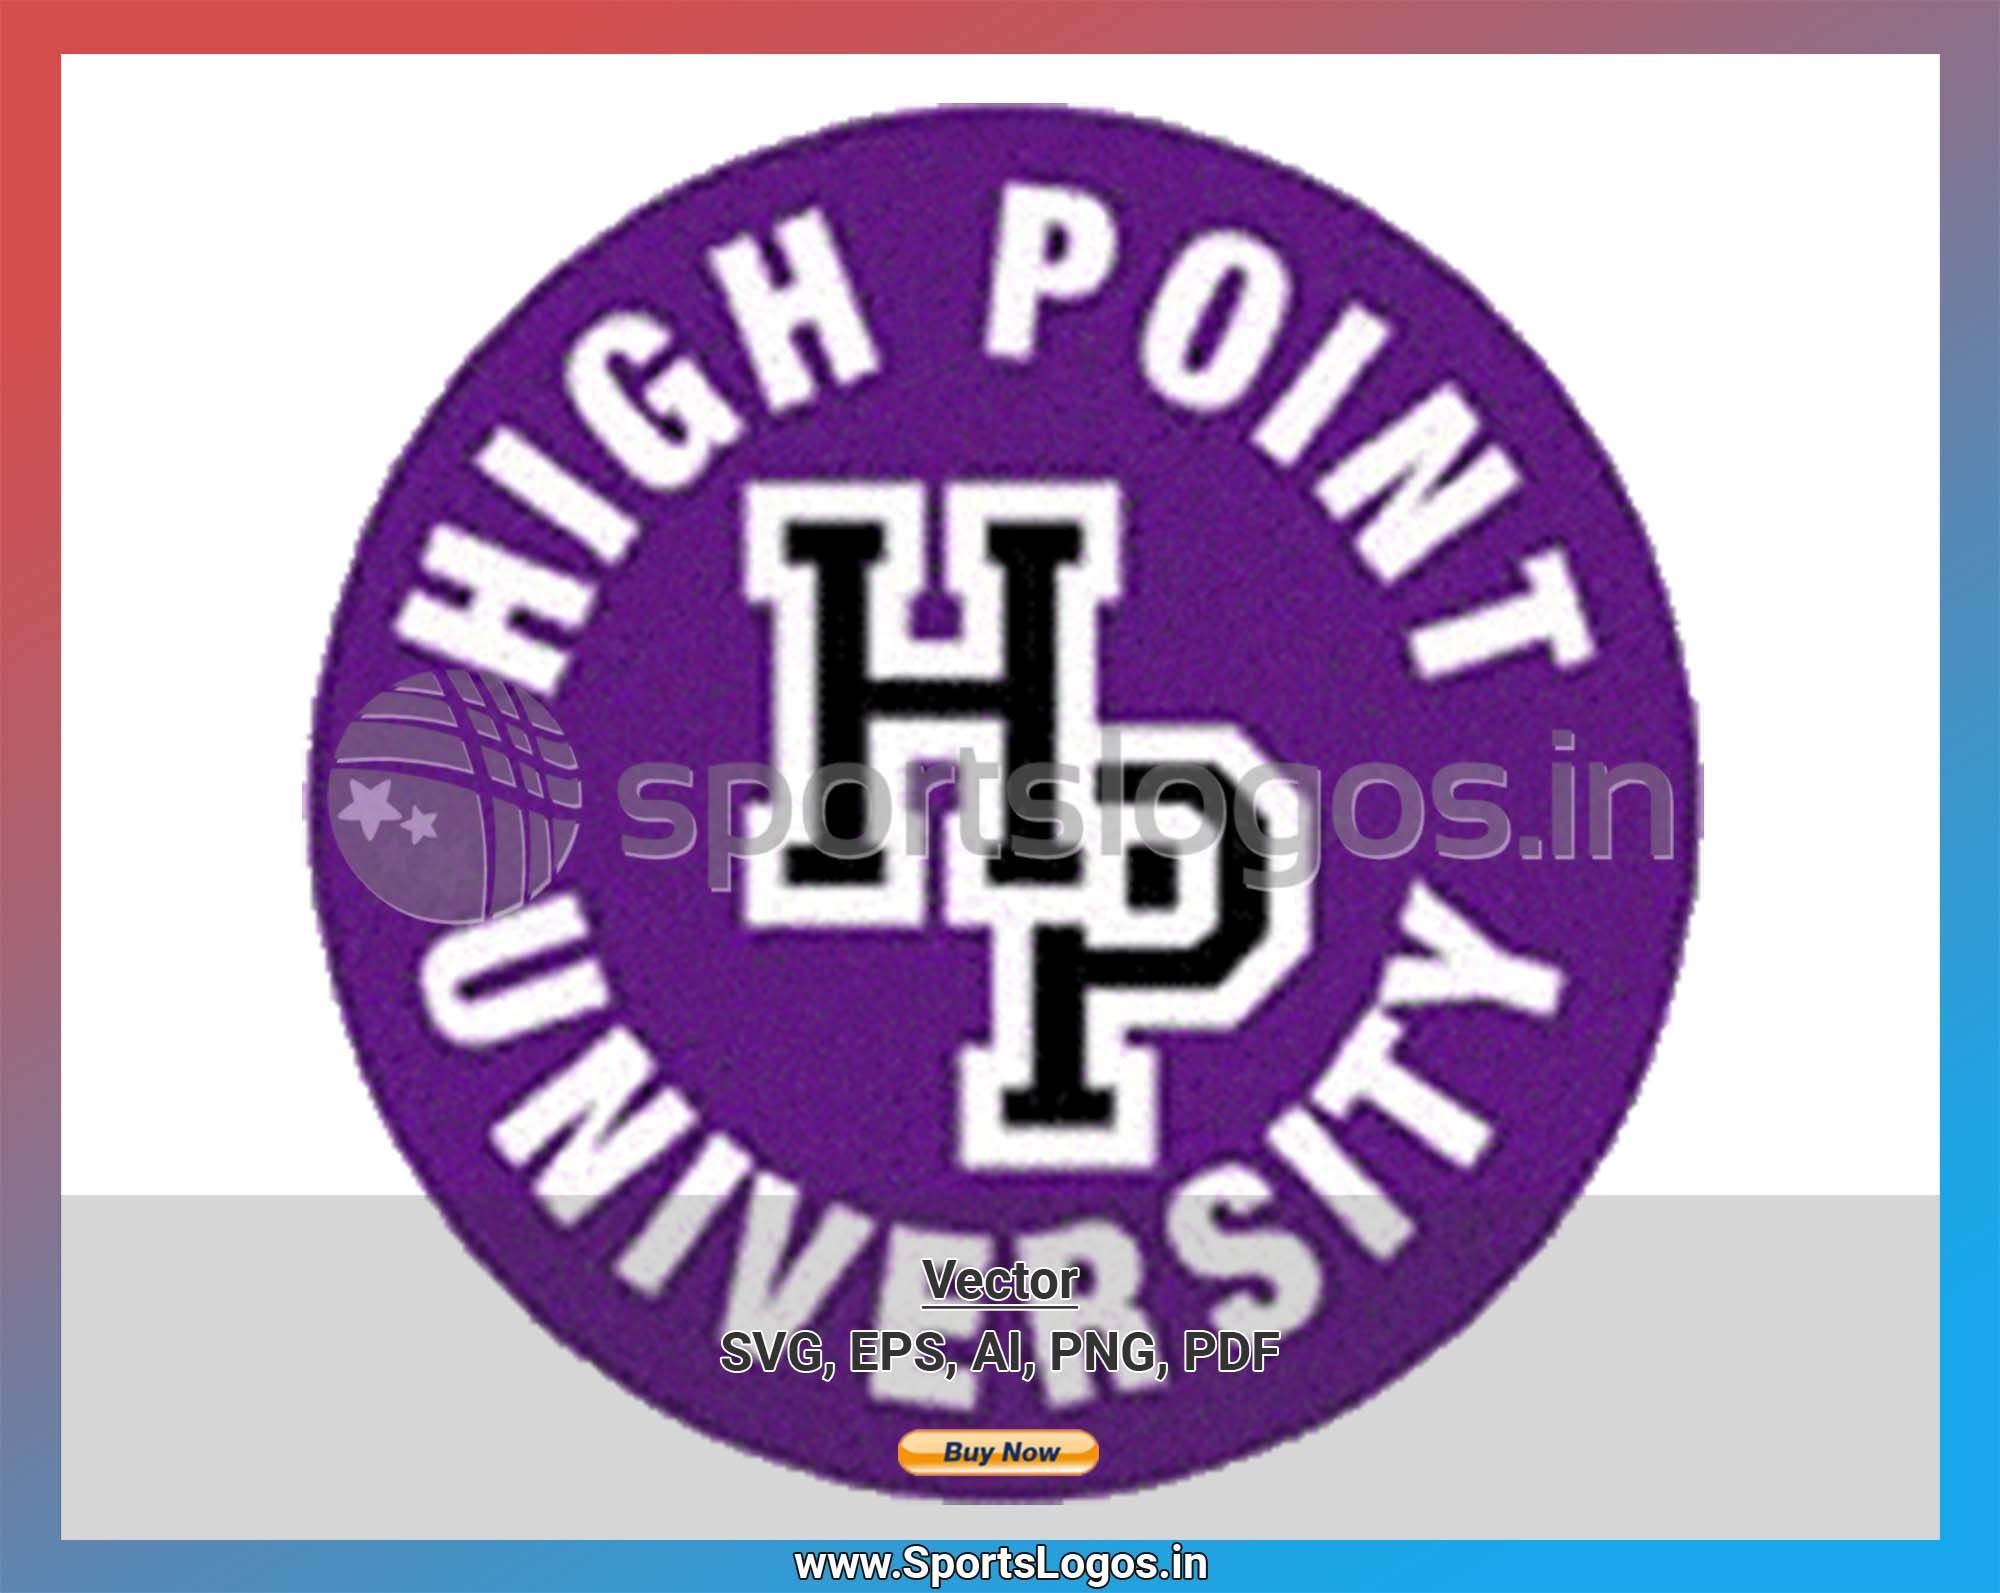 High Point Panthers College Sports Vector Svg Logo In 5 Formats Spln001839 Sports Logos Embroidery Vector For Nfl Nba Nhl Mlb Milb And More Embroidery Logo Vector Svg College Sports